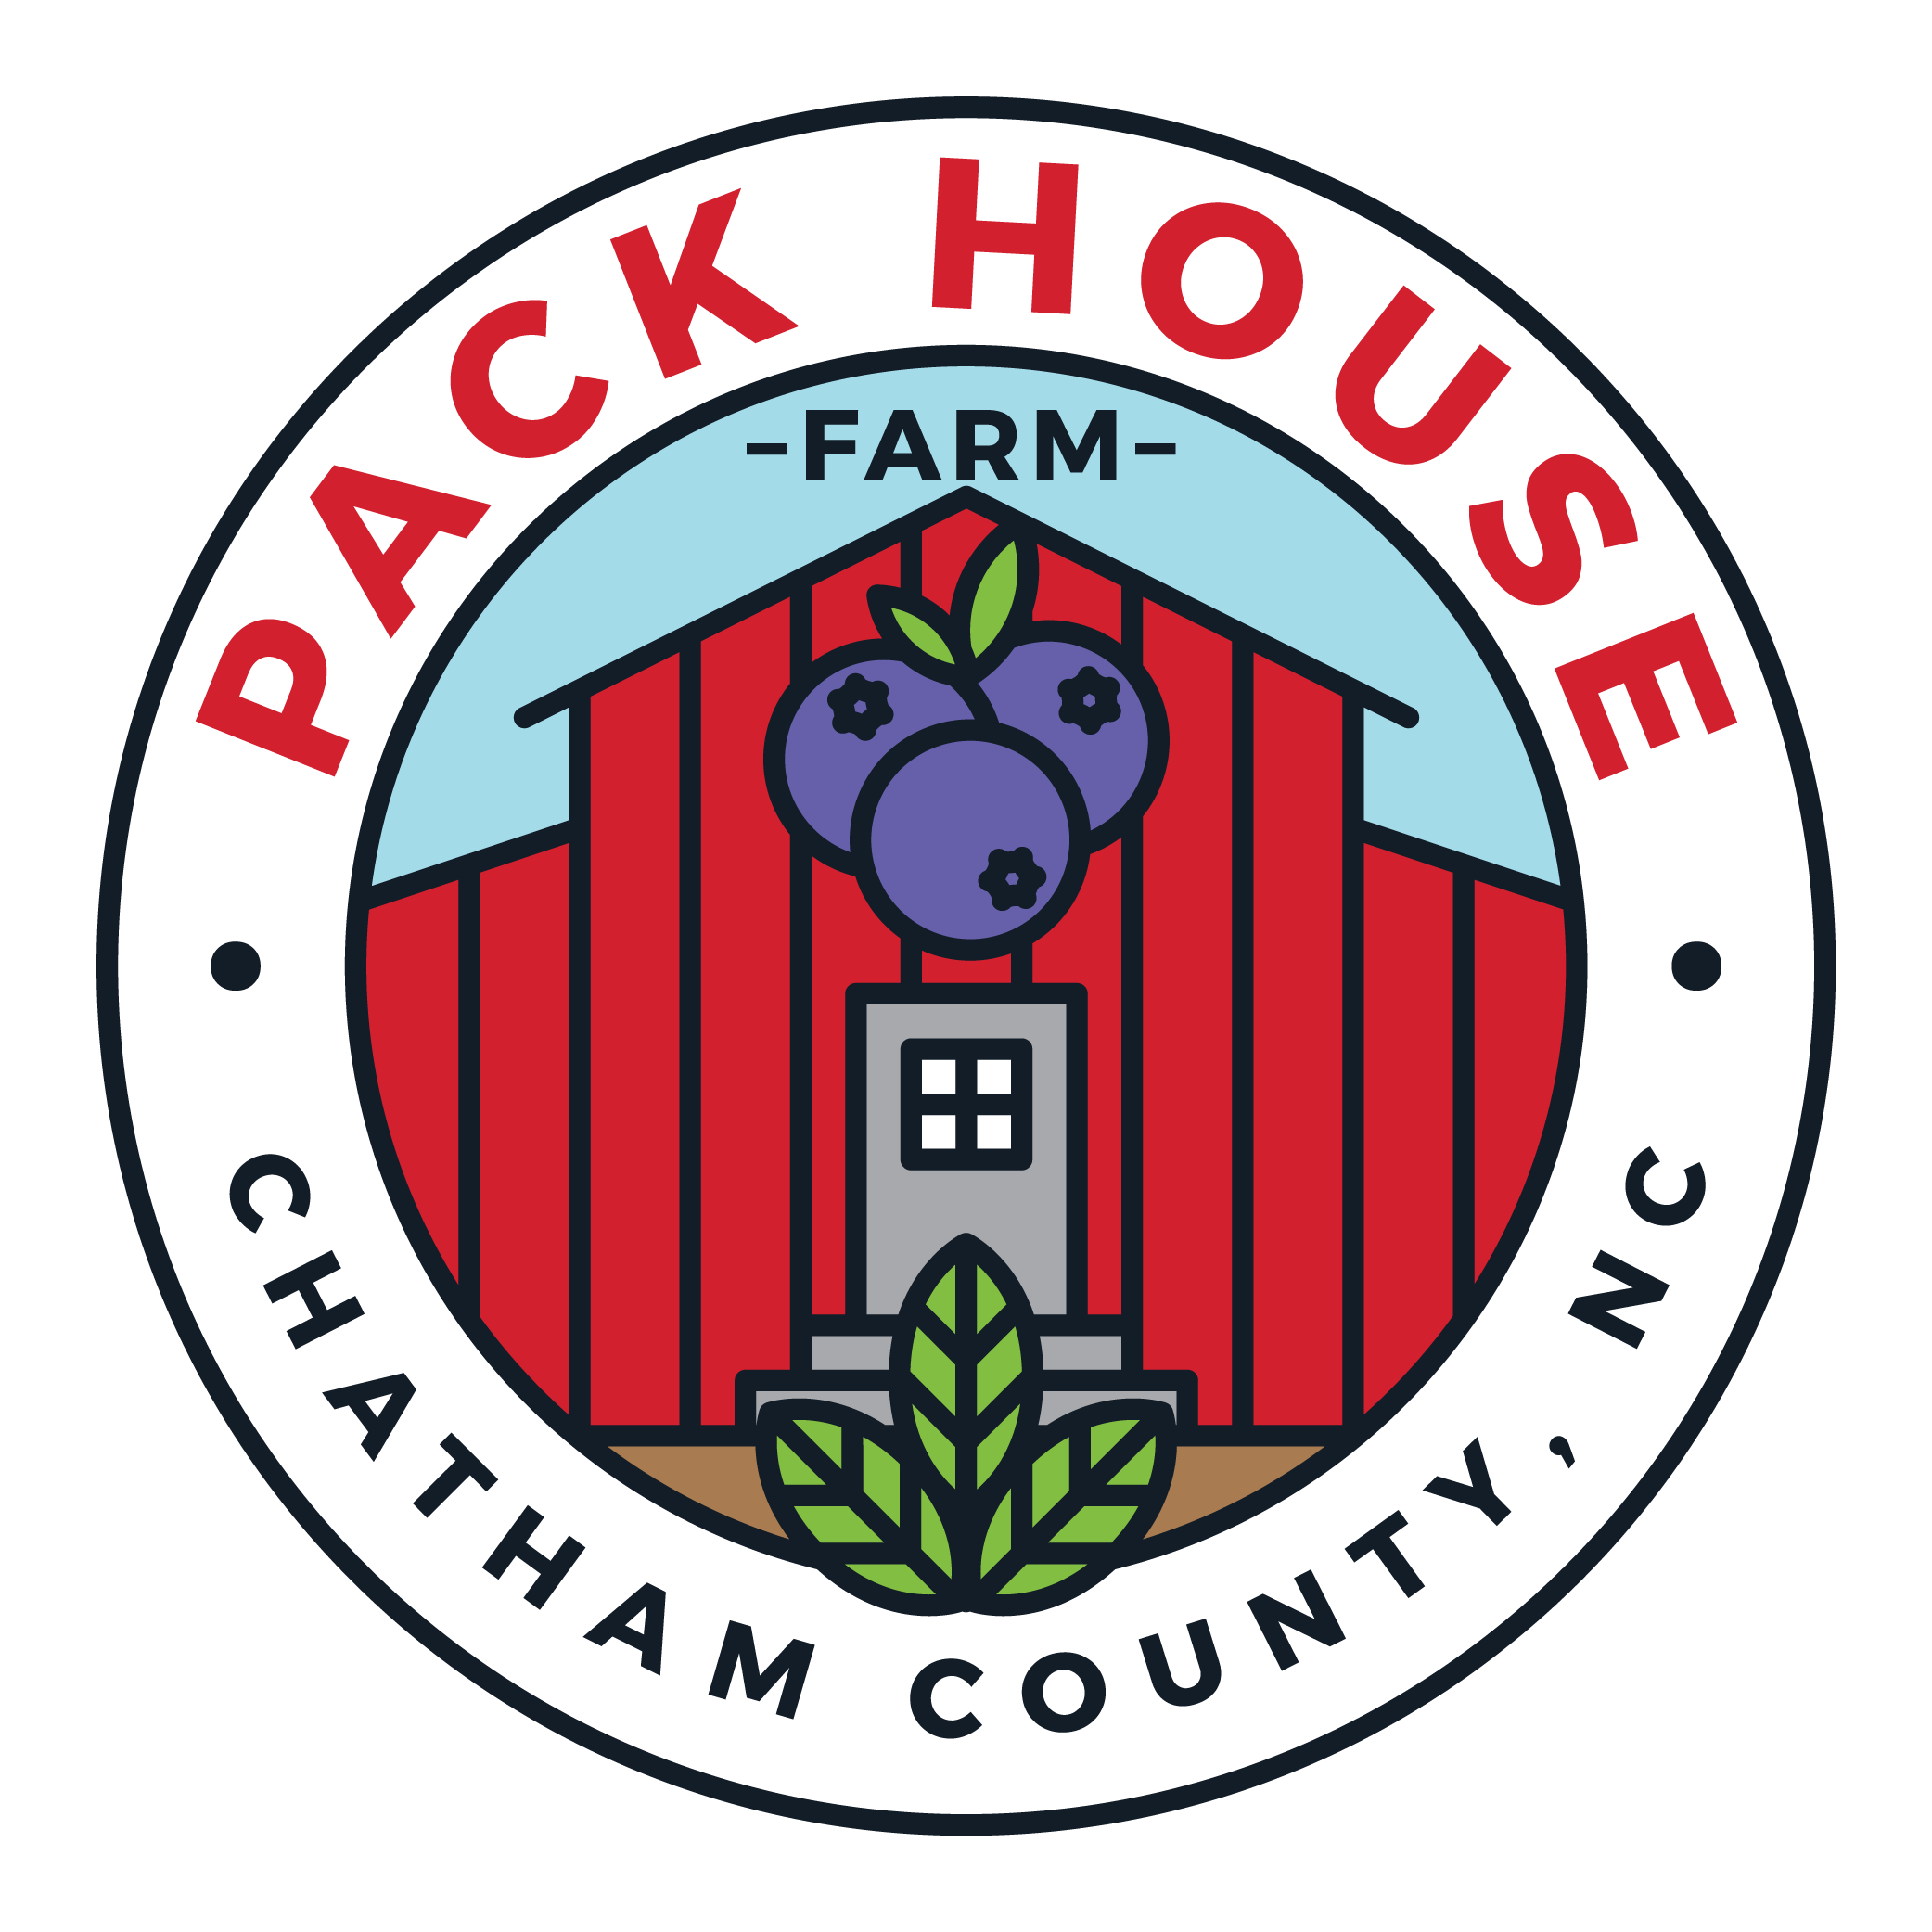 Pack House Farm